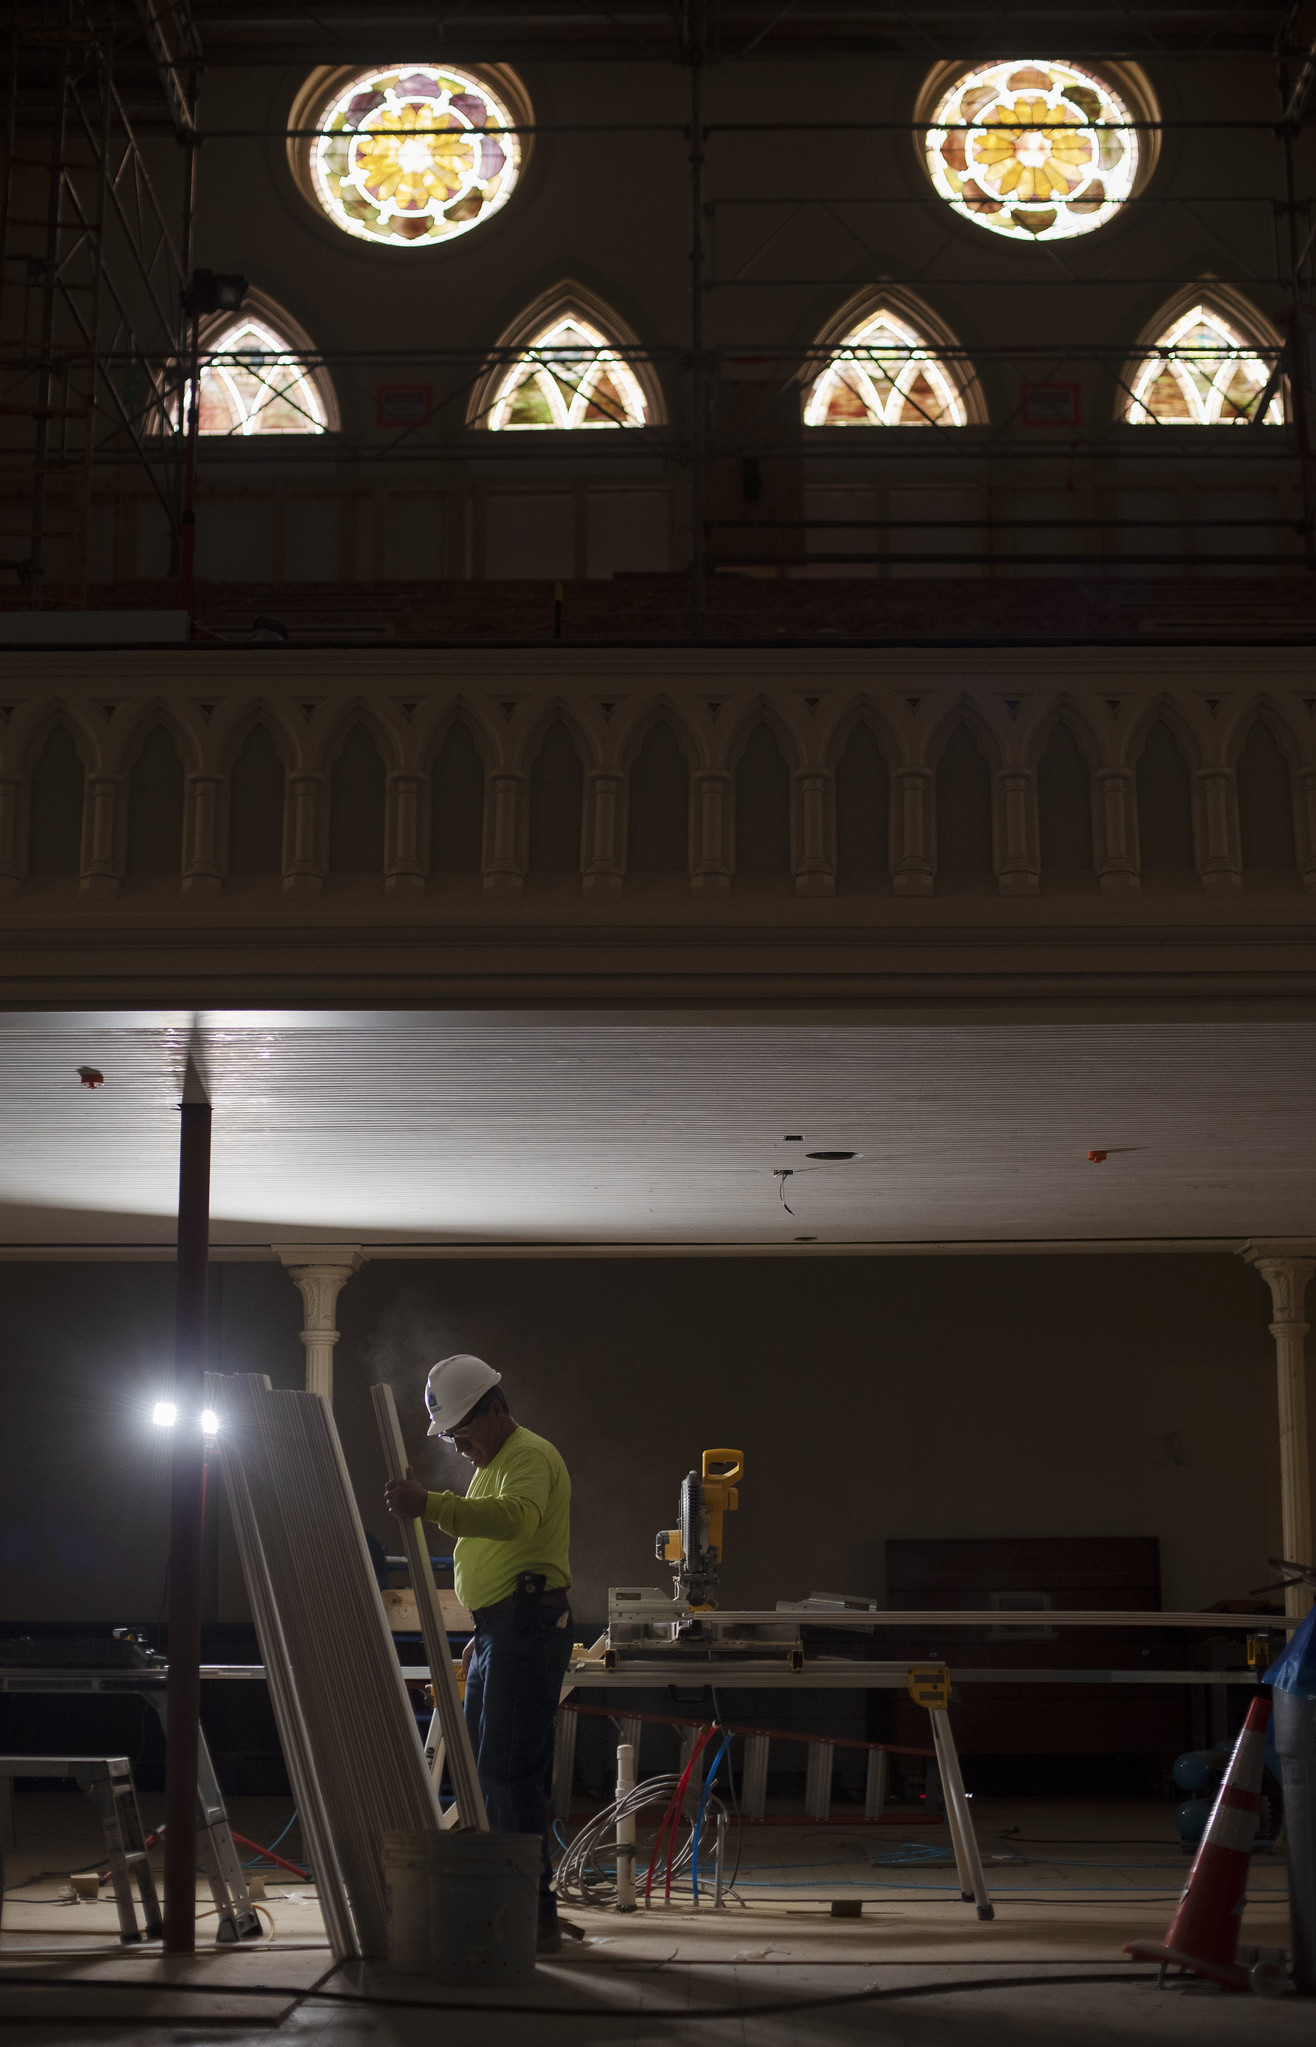 A construction worker is lit by worklight as sun streams through stained glass in the balcony of the great hall during construction at UPH Monday, Novermber 11, 2019. Photo credit: Kate Penn - Proctors